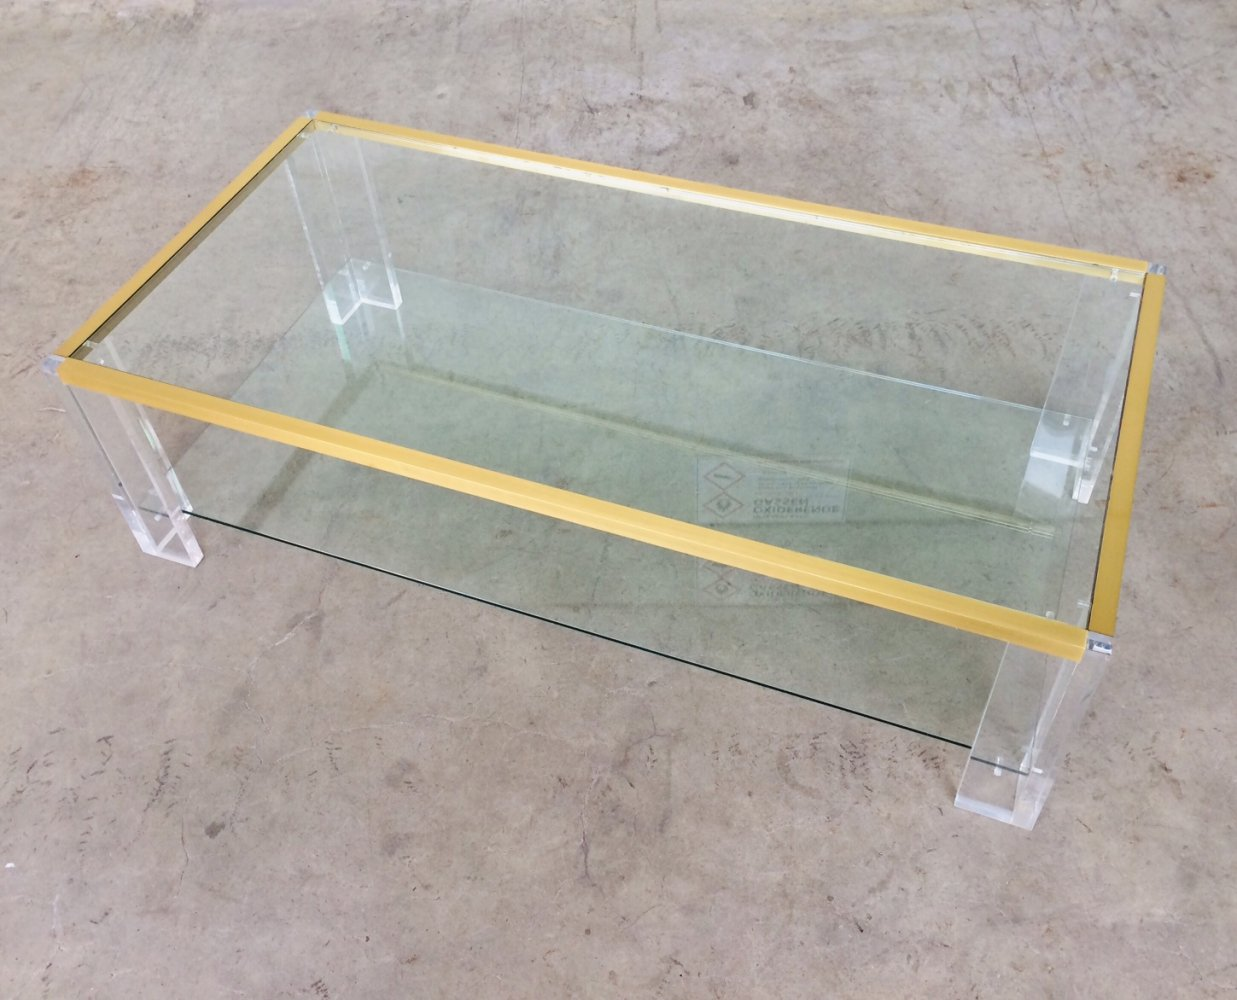 Midcentury Modern 2 level Brass & Lucite Coffee Table, 1970